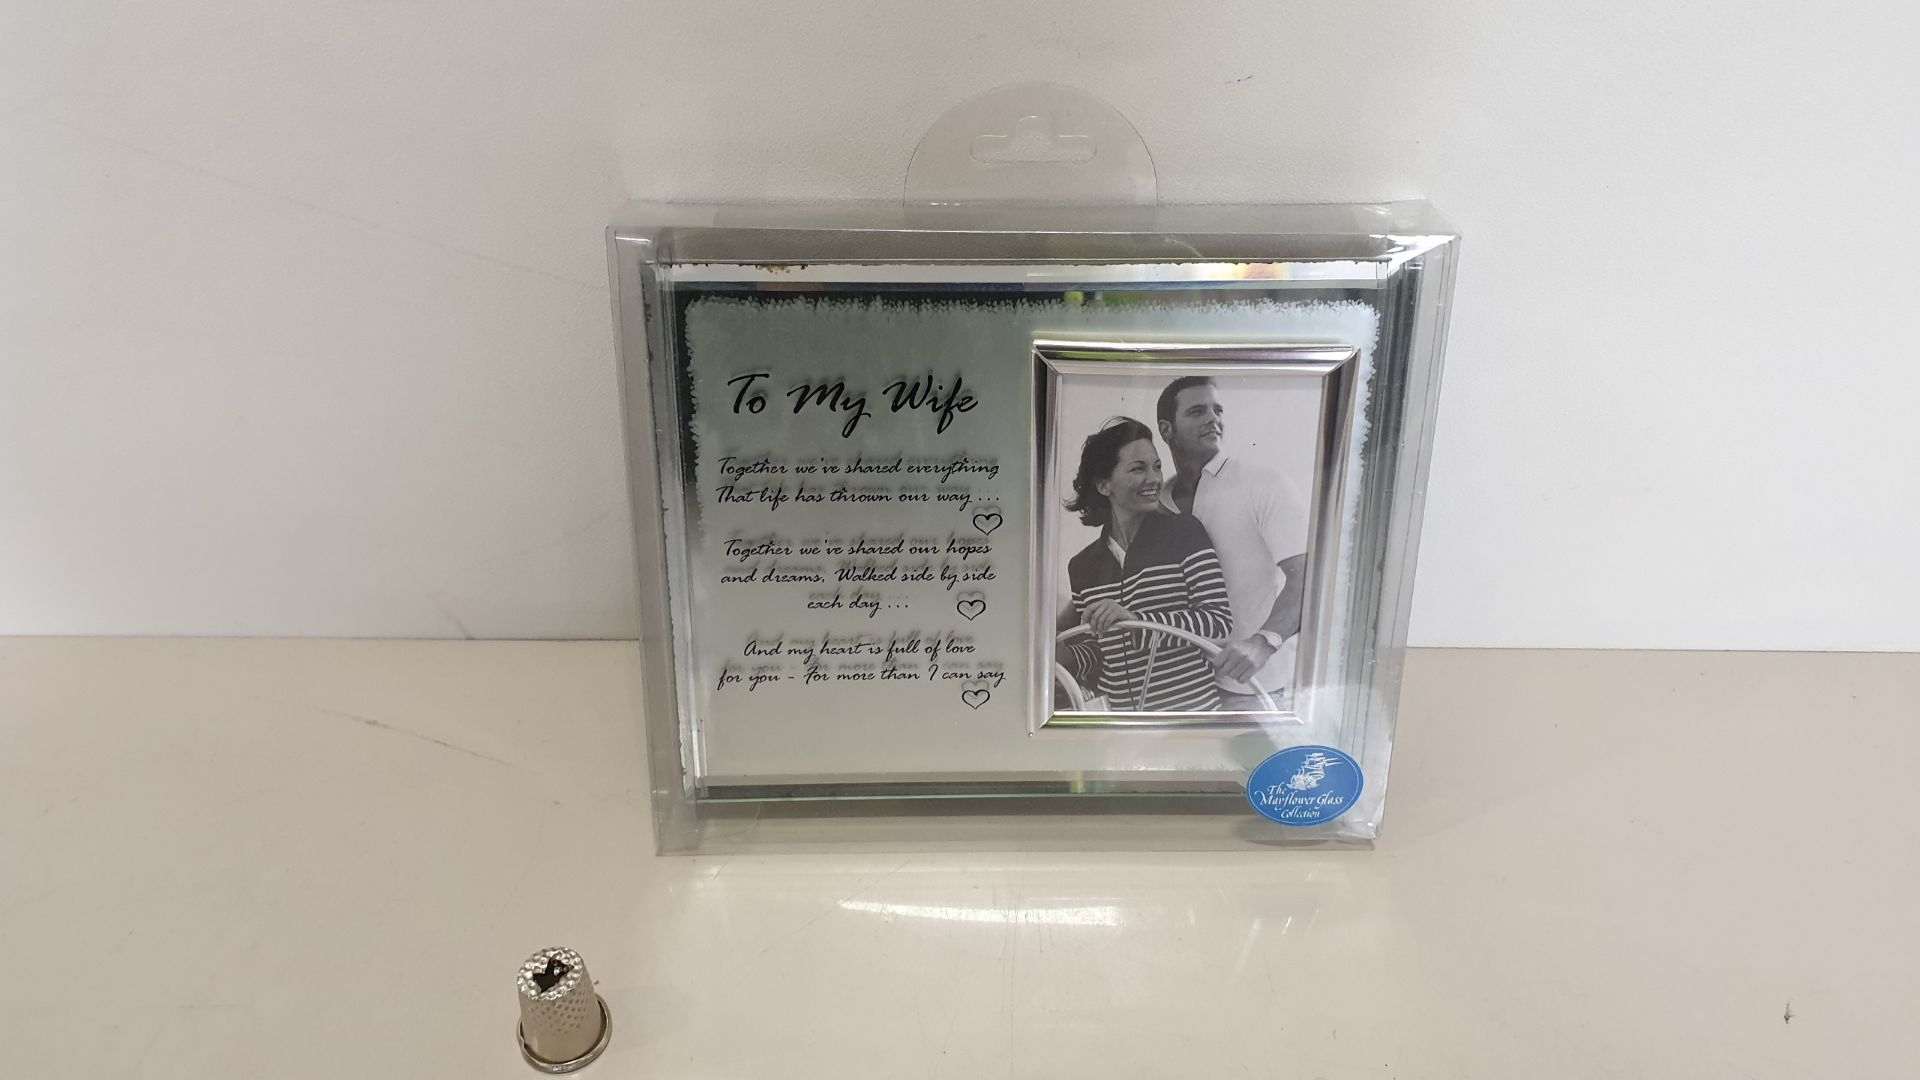 Lot 620 - 112 X BRAND NEW 'THE MAYFLOWER GLASS COLLECTION' TO MY WIFE MESSAGE FRAME - IN 2 BOXES AND 16 LOOSE